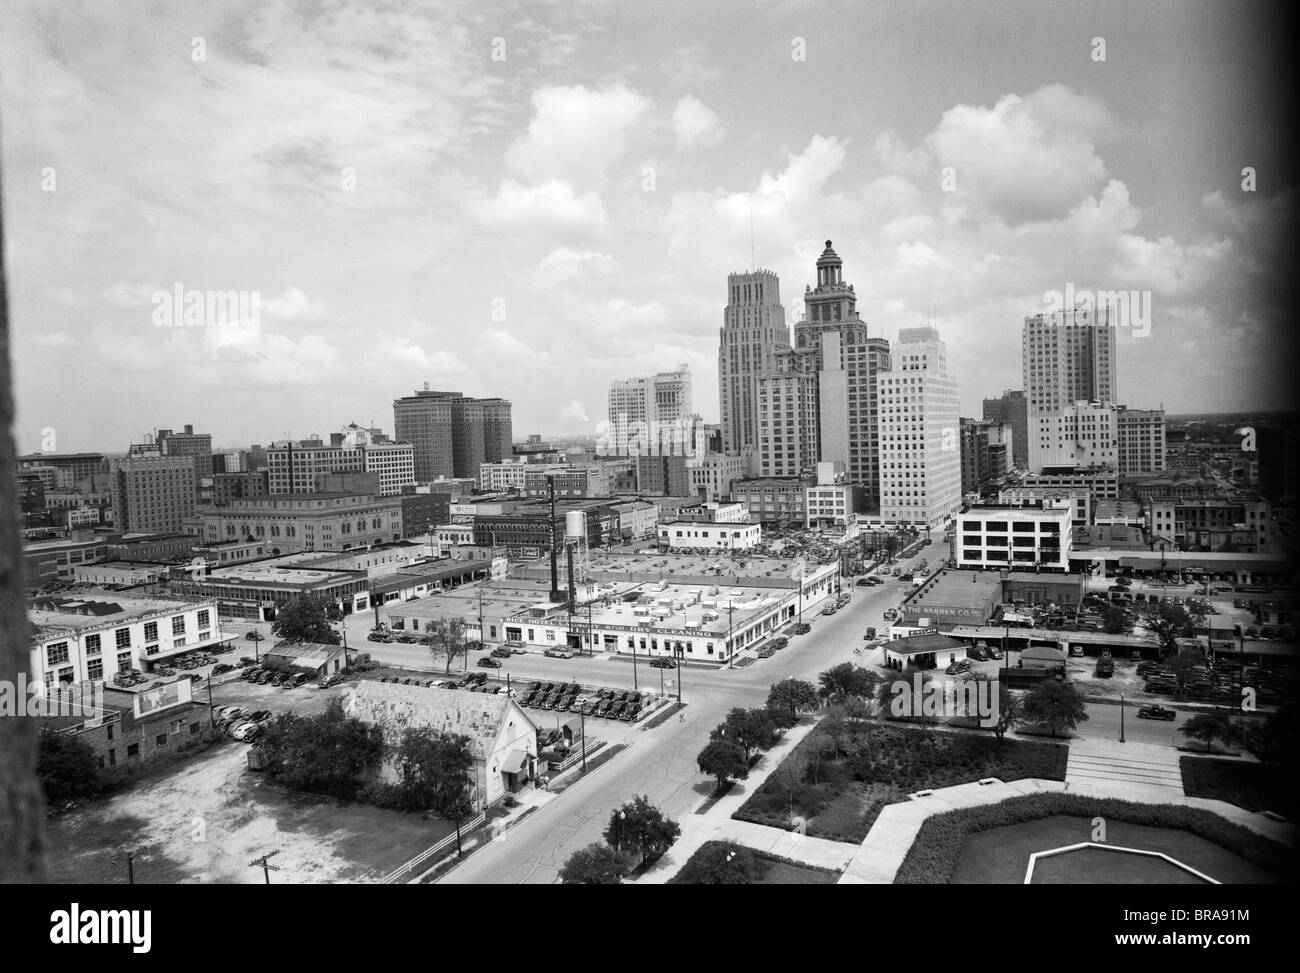 1940s skyline del quartiere degli affari di Houston in Texas dal Municipio Immagini Stock